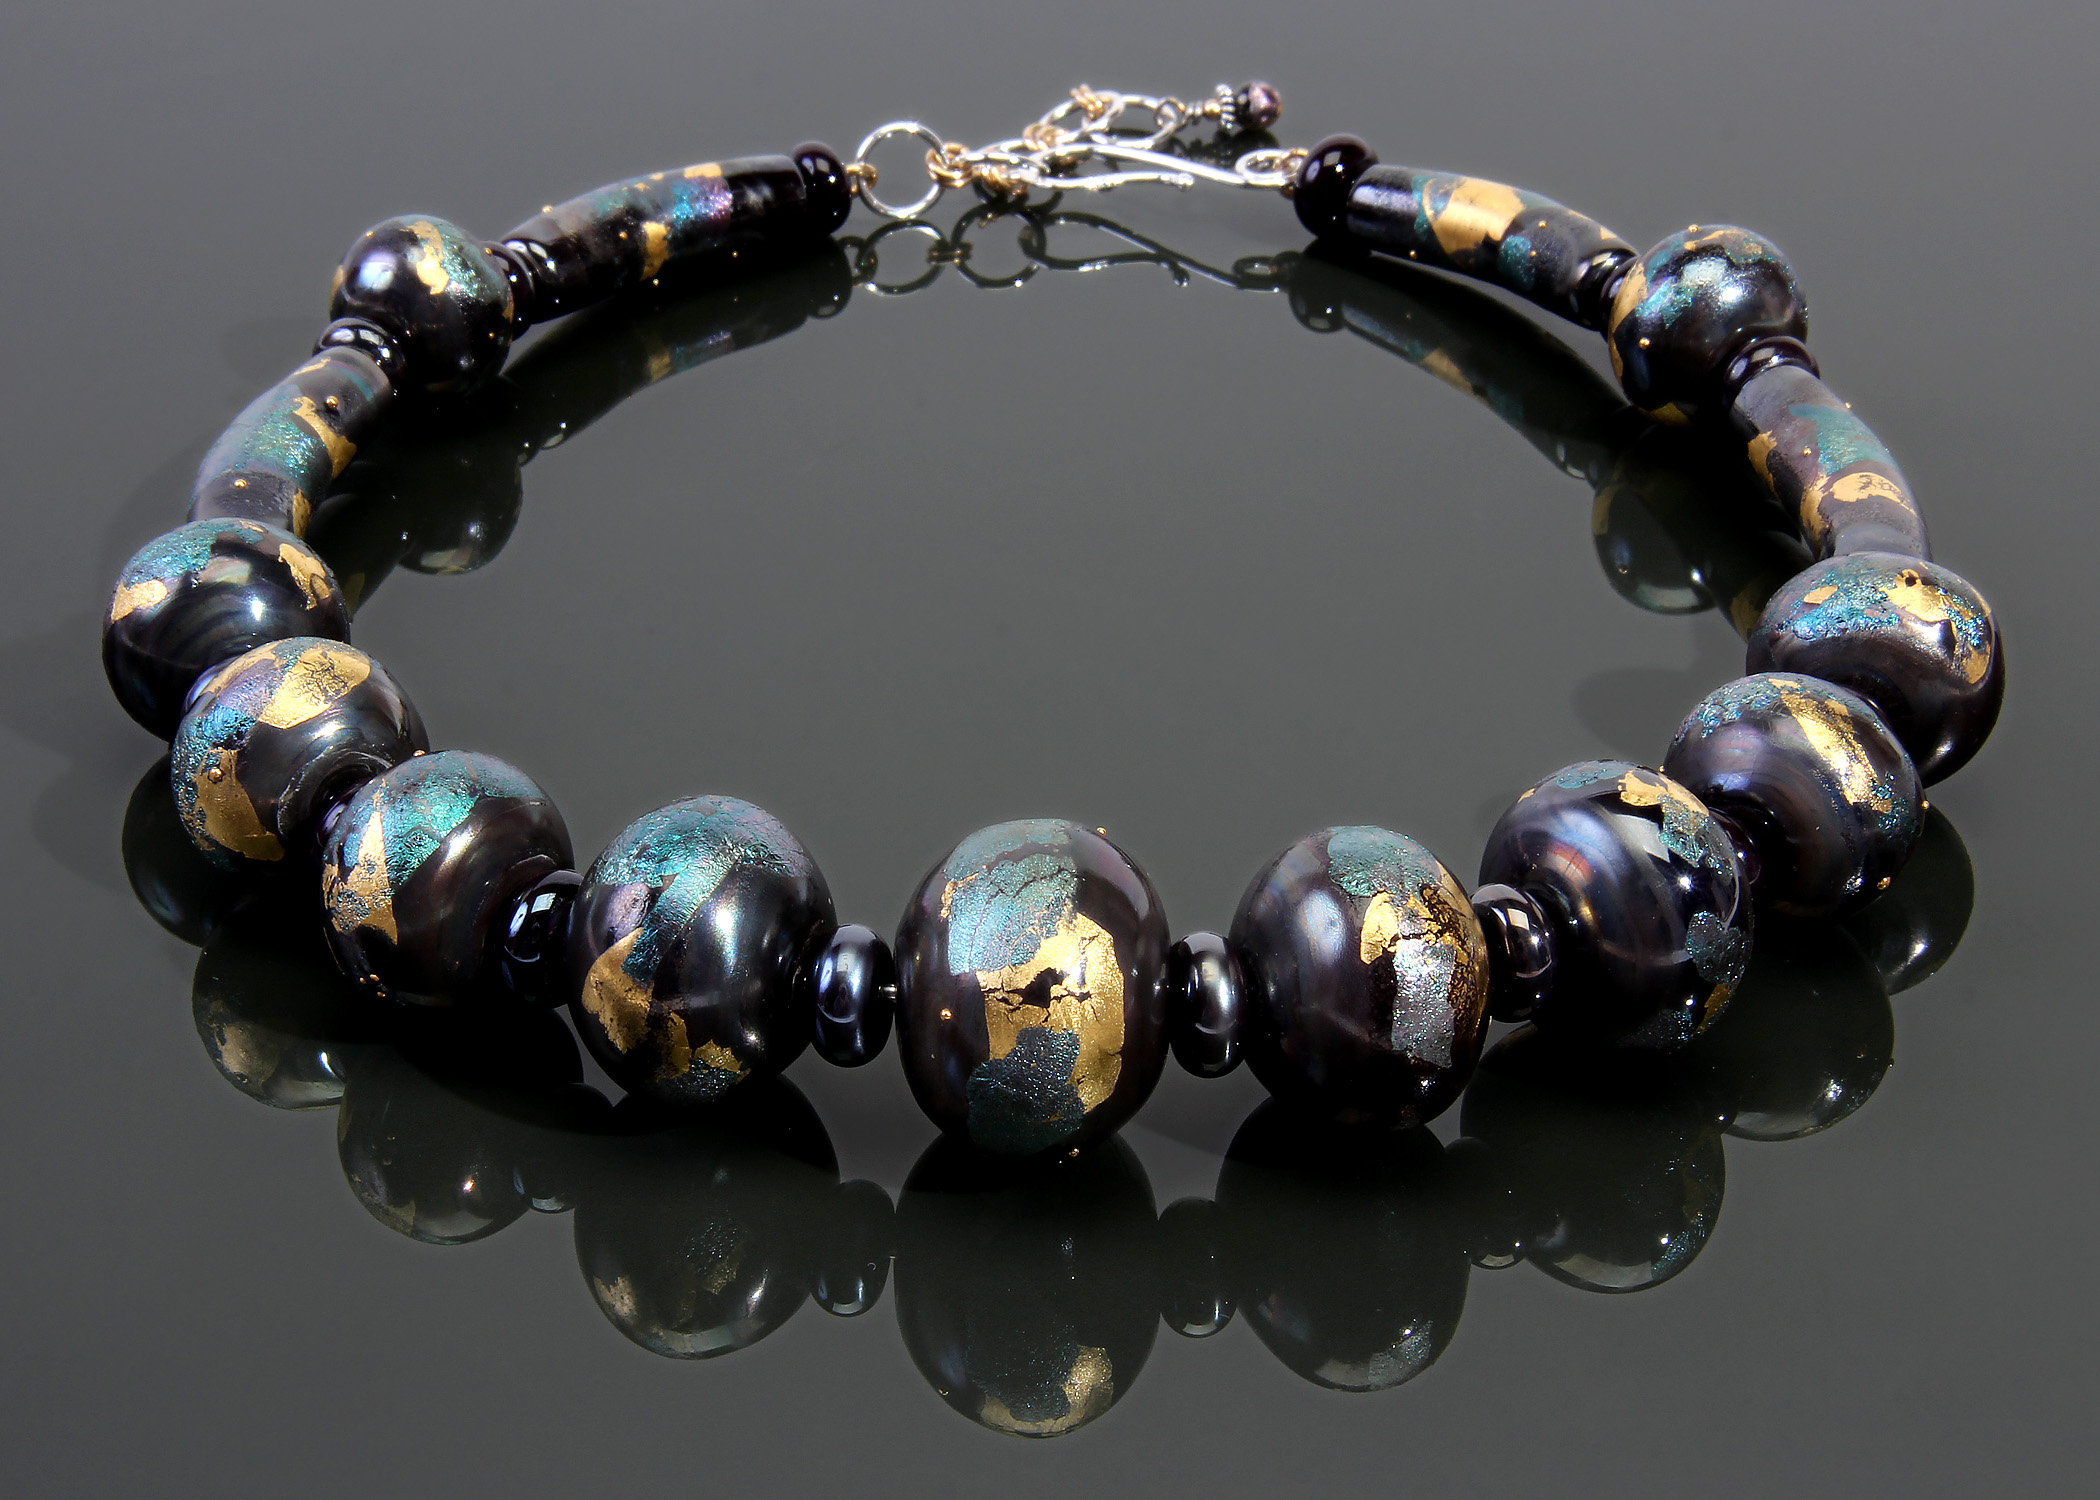 Palladium and Gold Leafed Black Hollow Bead Necklace